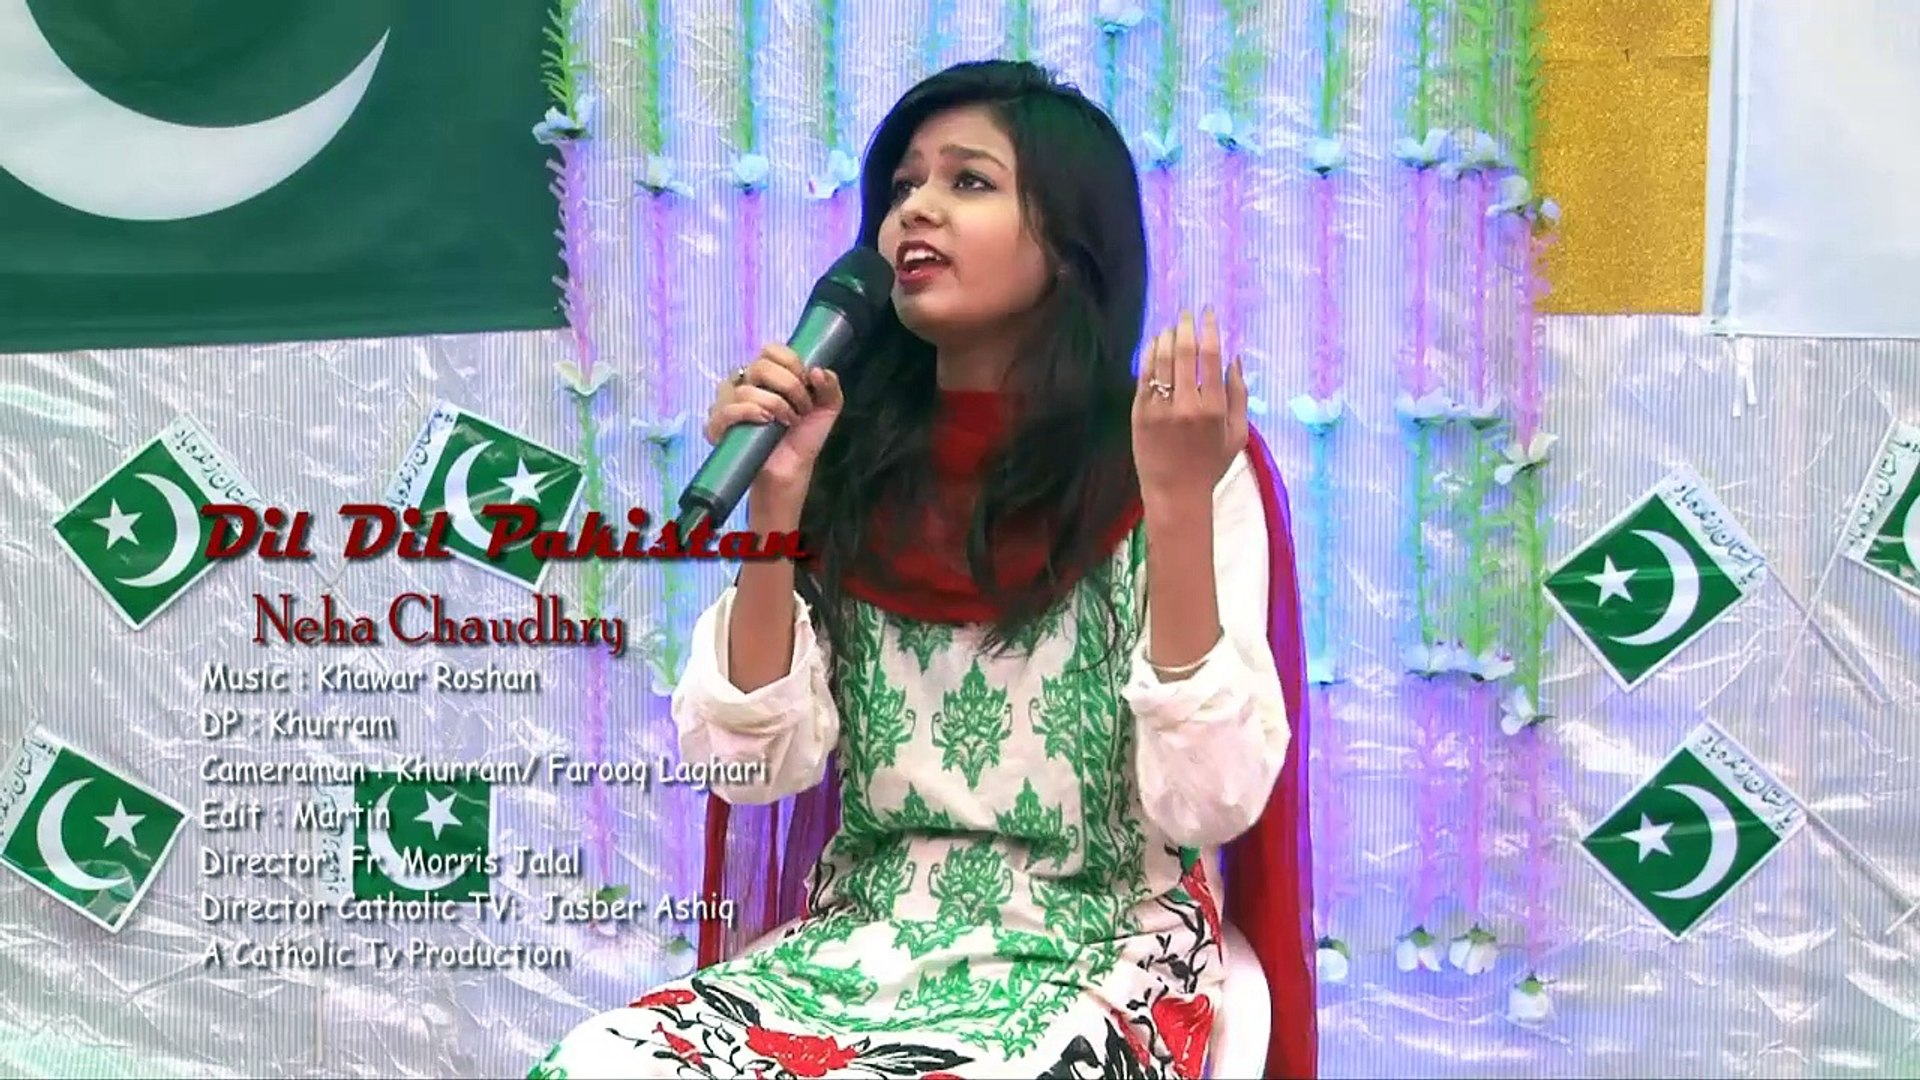 Independence day Song: Dil Dil Pakistan By Neha Chaudhry